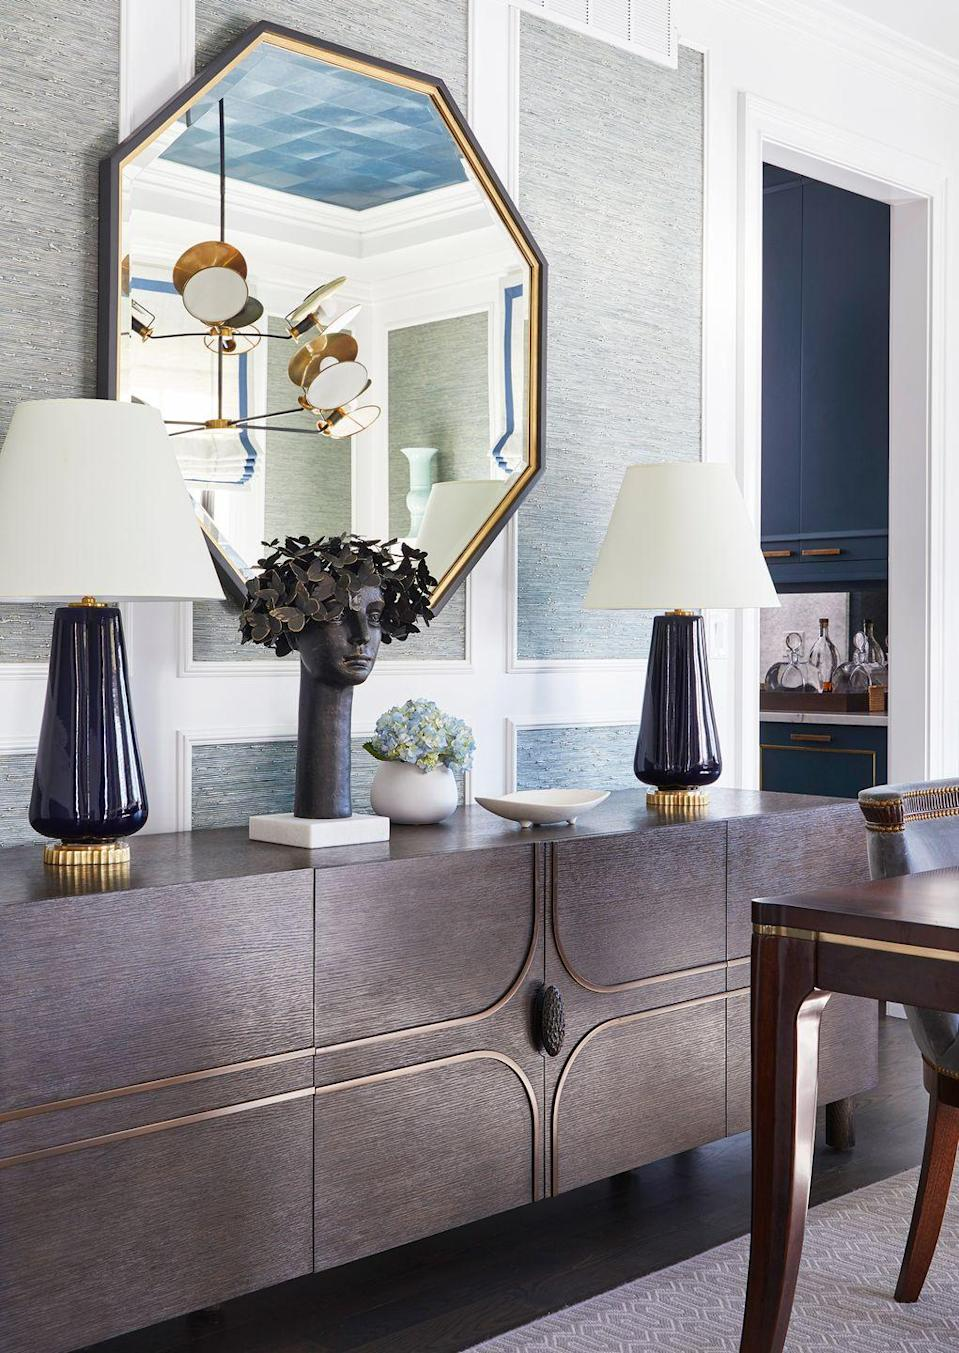 "<p>Dinging rooms are another great place for console tables, as you can always use an extra spot for additional plating and florals. Whether you opt for a classic console or a buffet like<a href=""https://coreydamenjenkins.com/"" rel=""nofollow noopener"" target=""_blank"" data-ylk=""slk:Corey Damen Jenkins"" class=""link rapid-noclick-resp""> Corey Damen Jenkins</a> did here (the latter is a popular option for its bonus storage capacity), consider adding a lamp for extra task lighting that's still stylish. </p>"